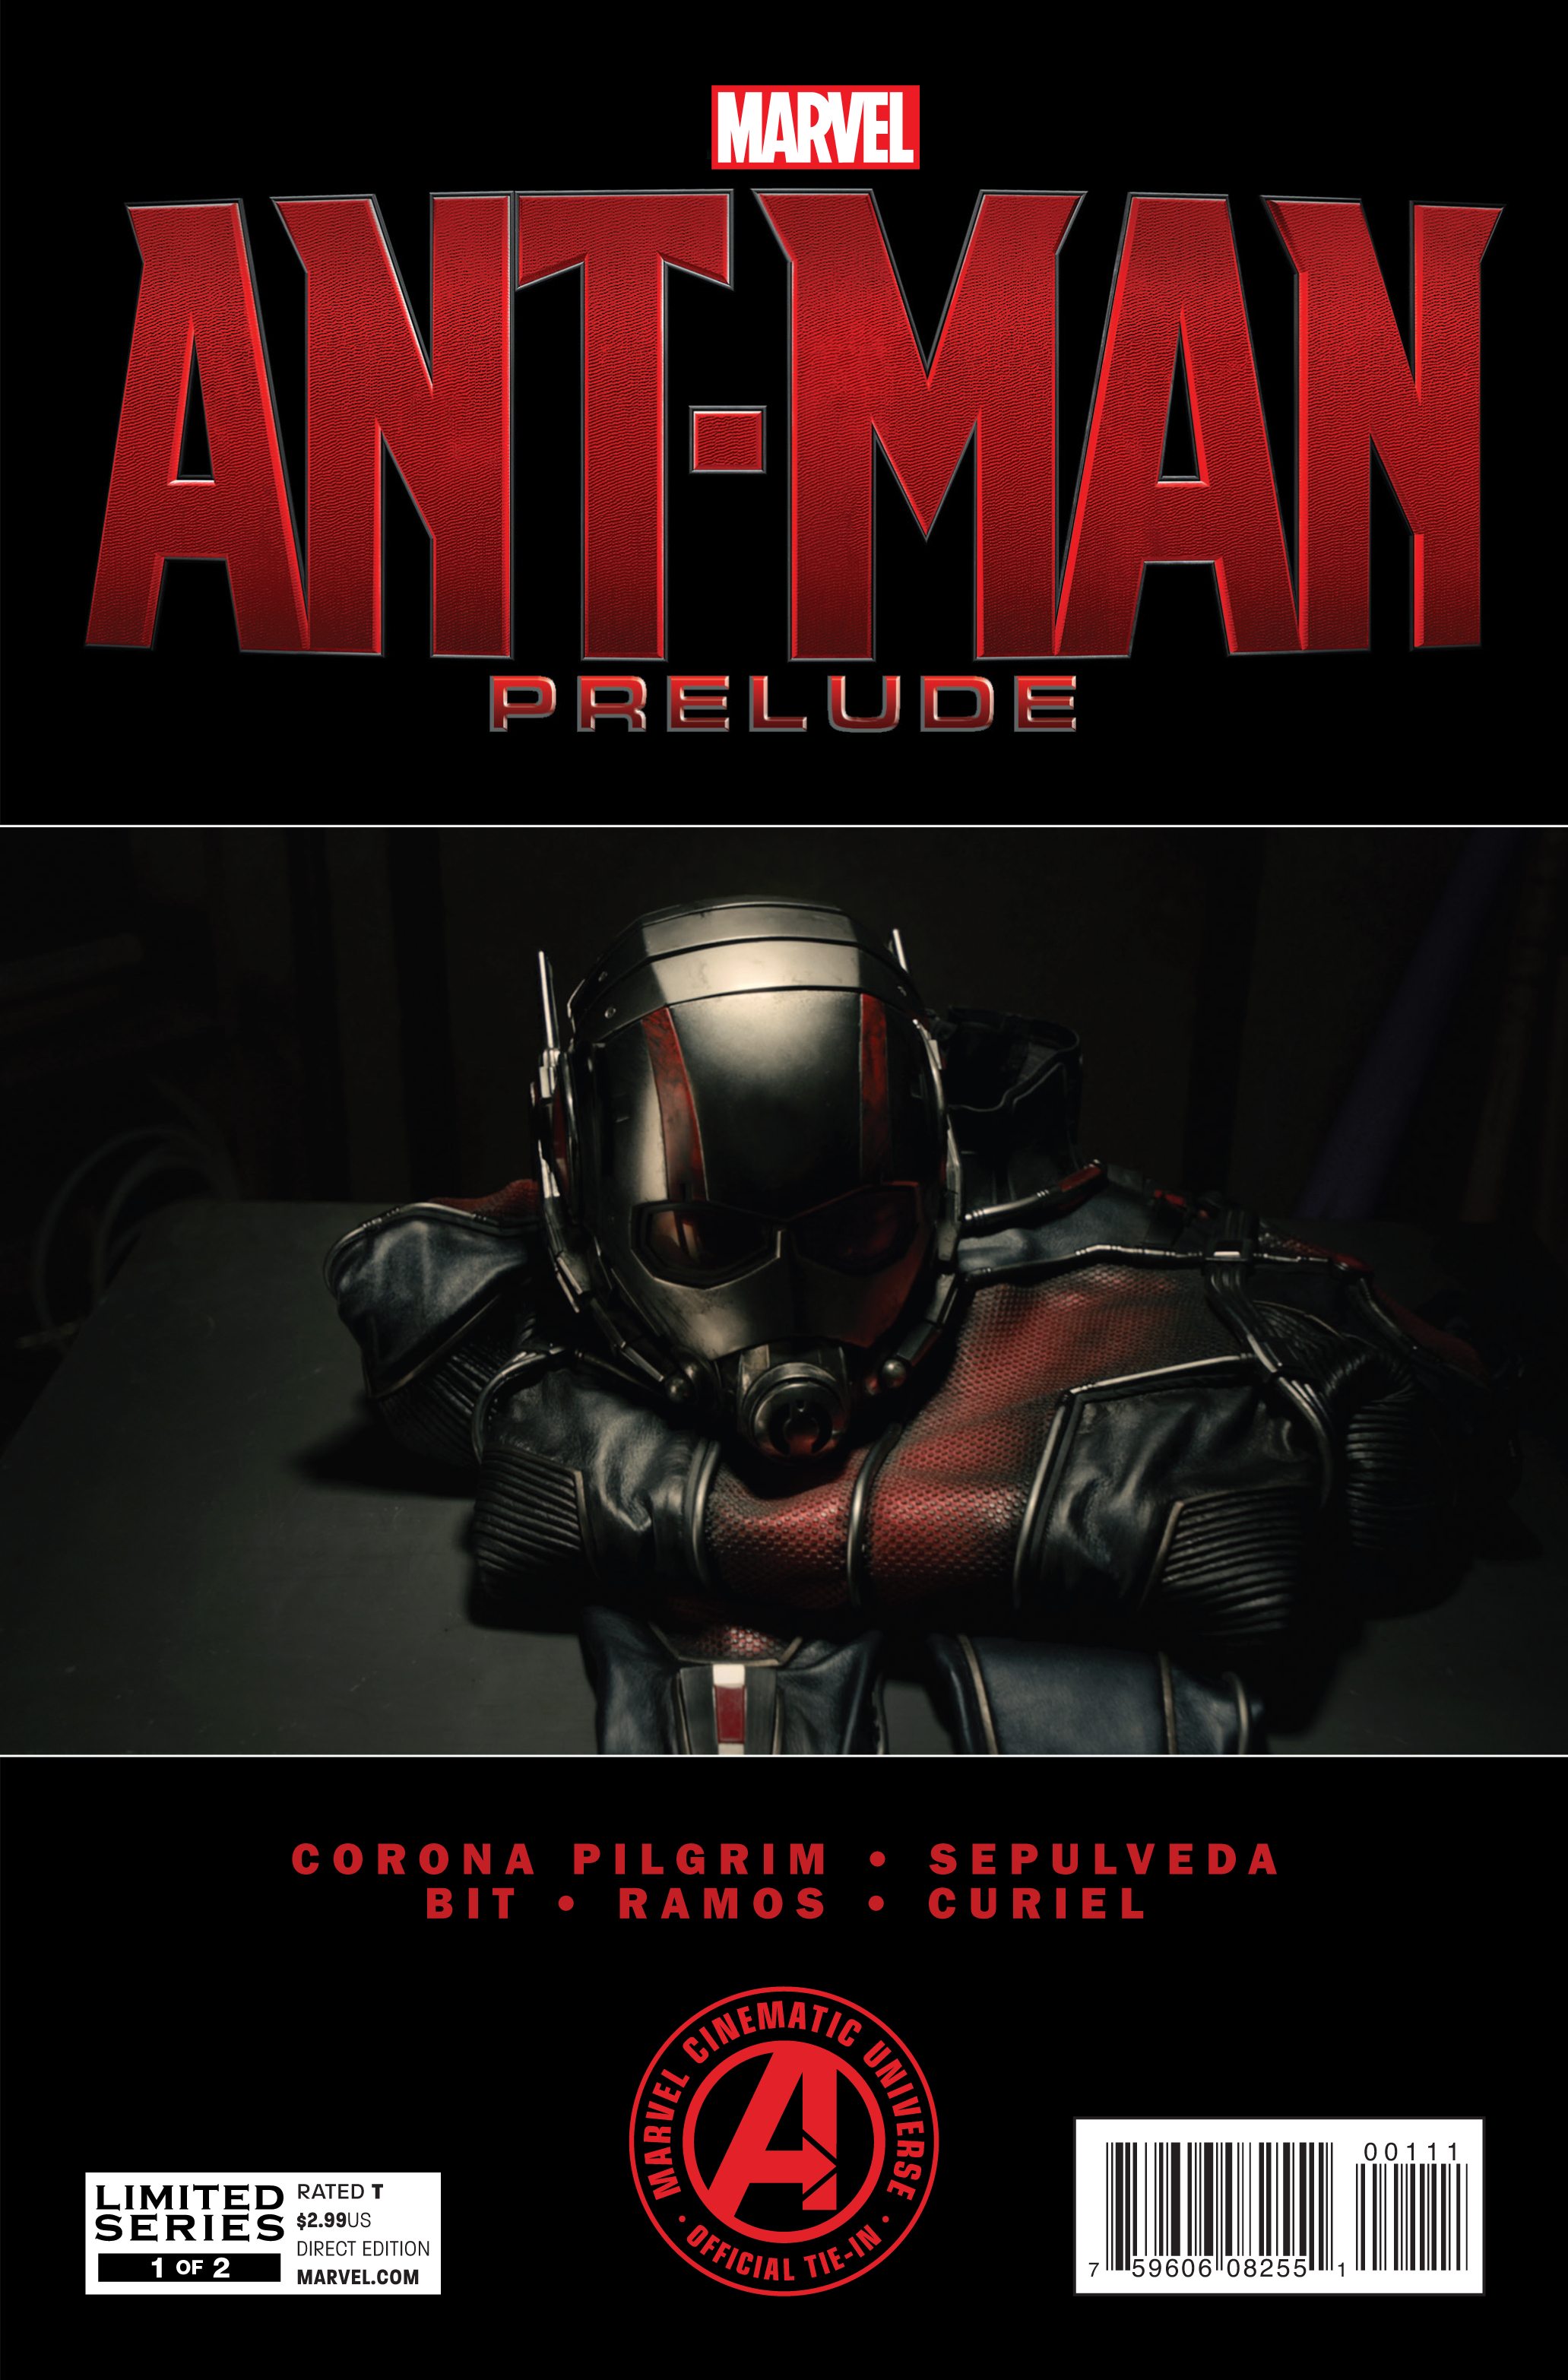 MARVELS ANT-MAN PRELUDE #1